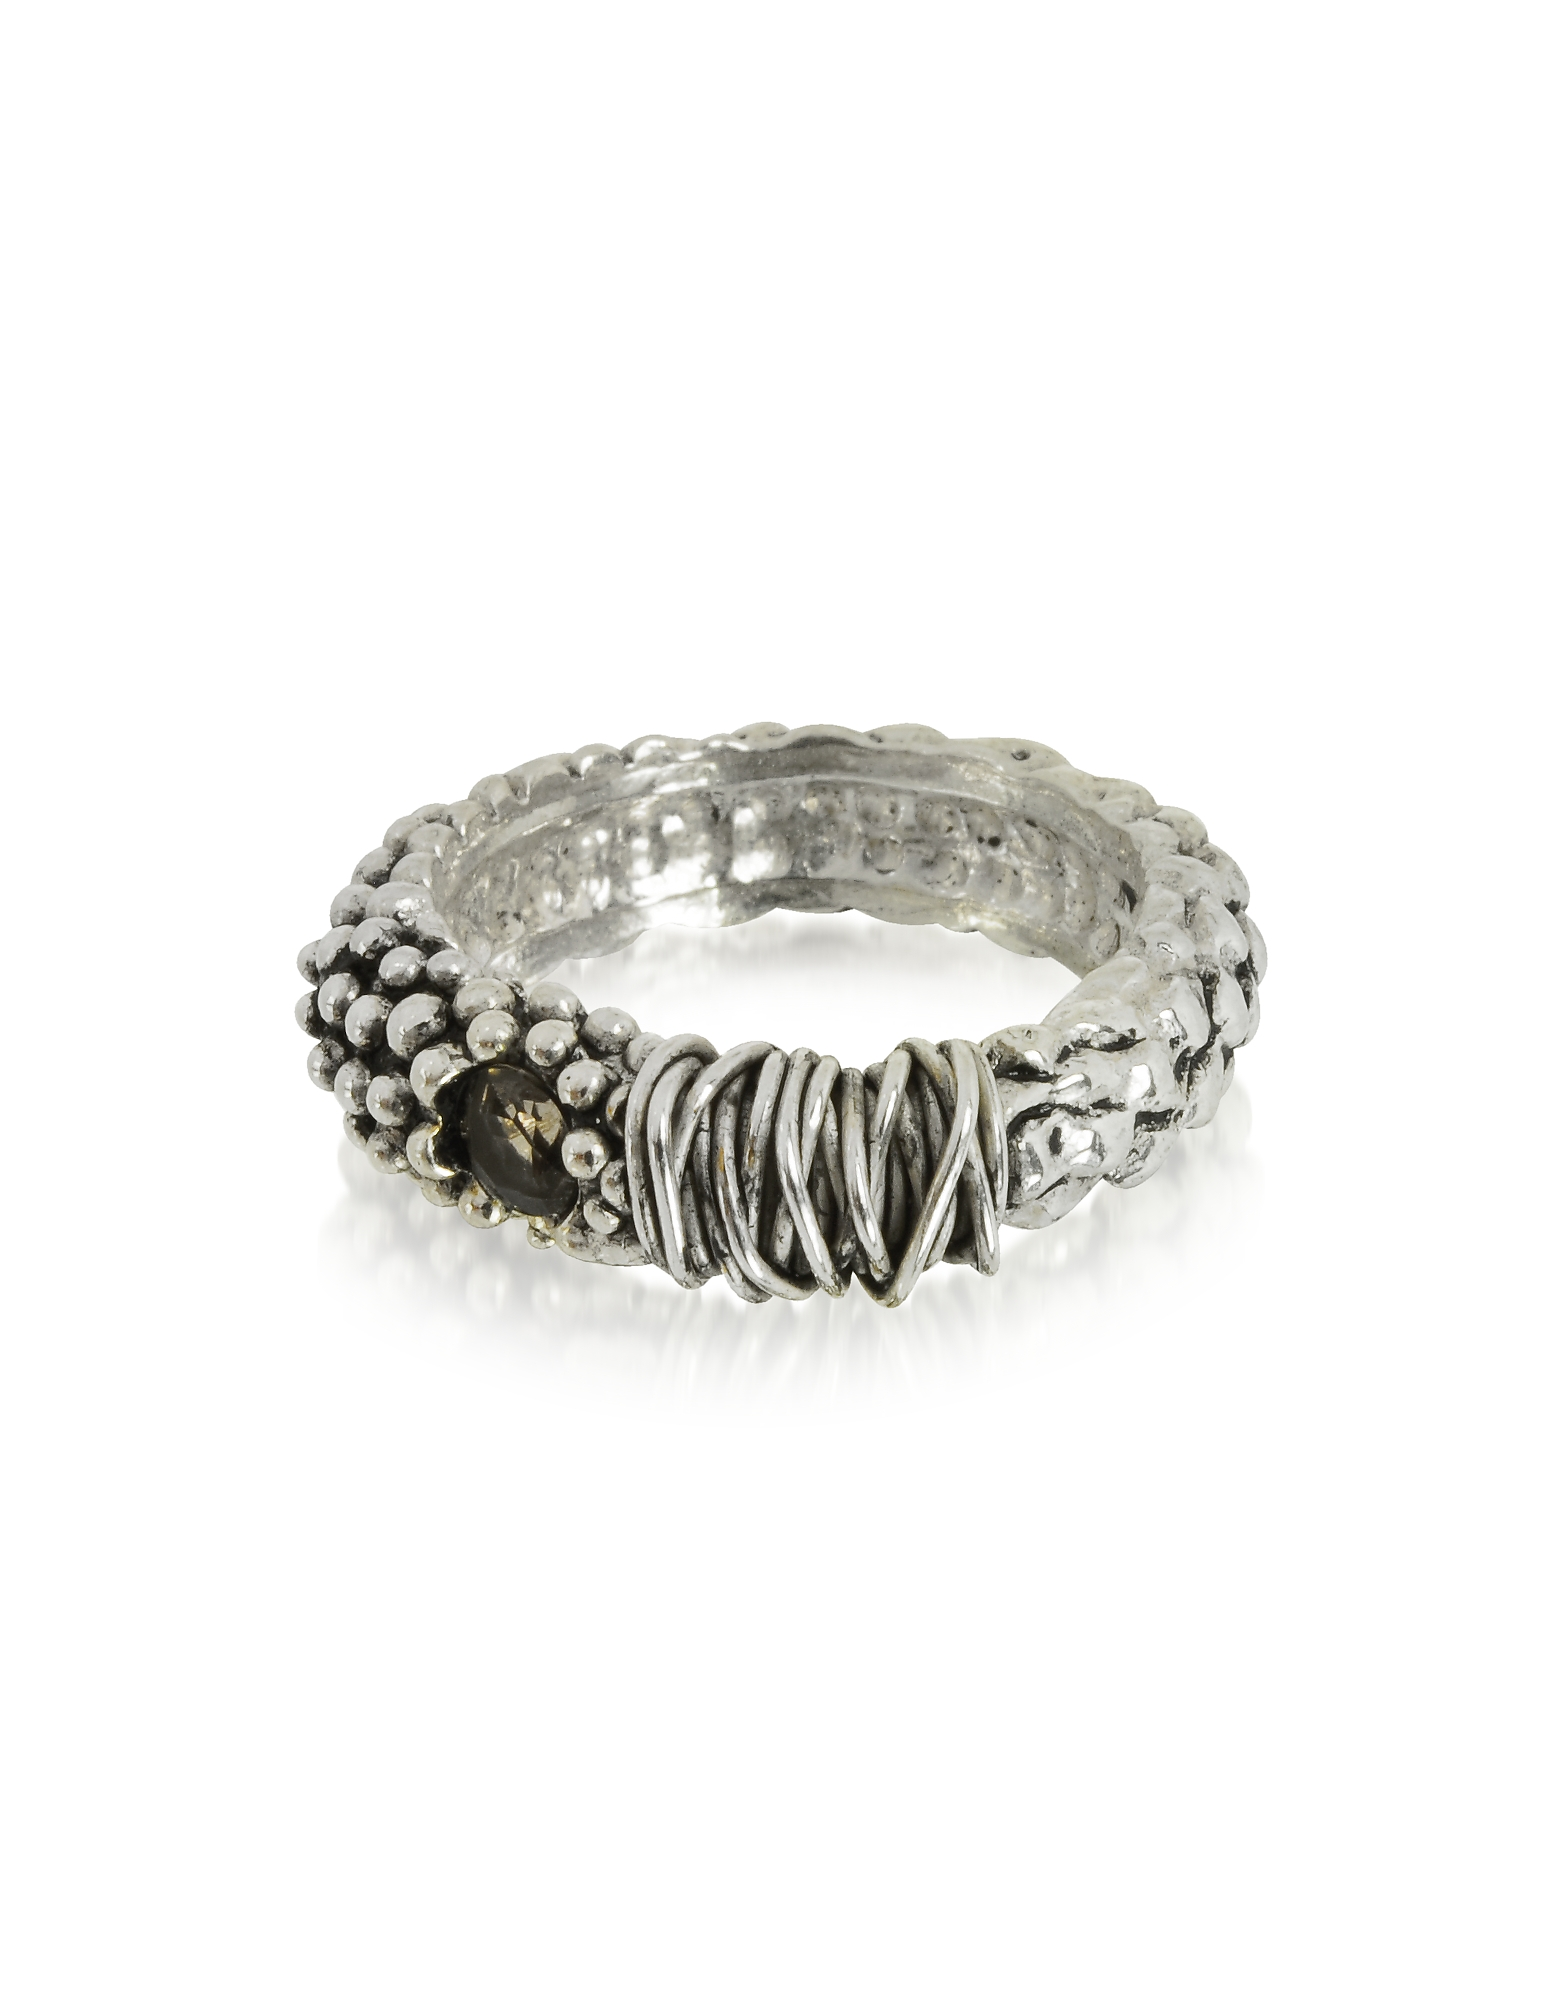 Giacomo Burroni Men's Rings, Sterling Silver Ring w/Crystal